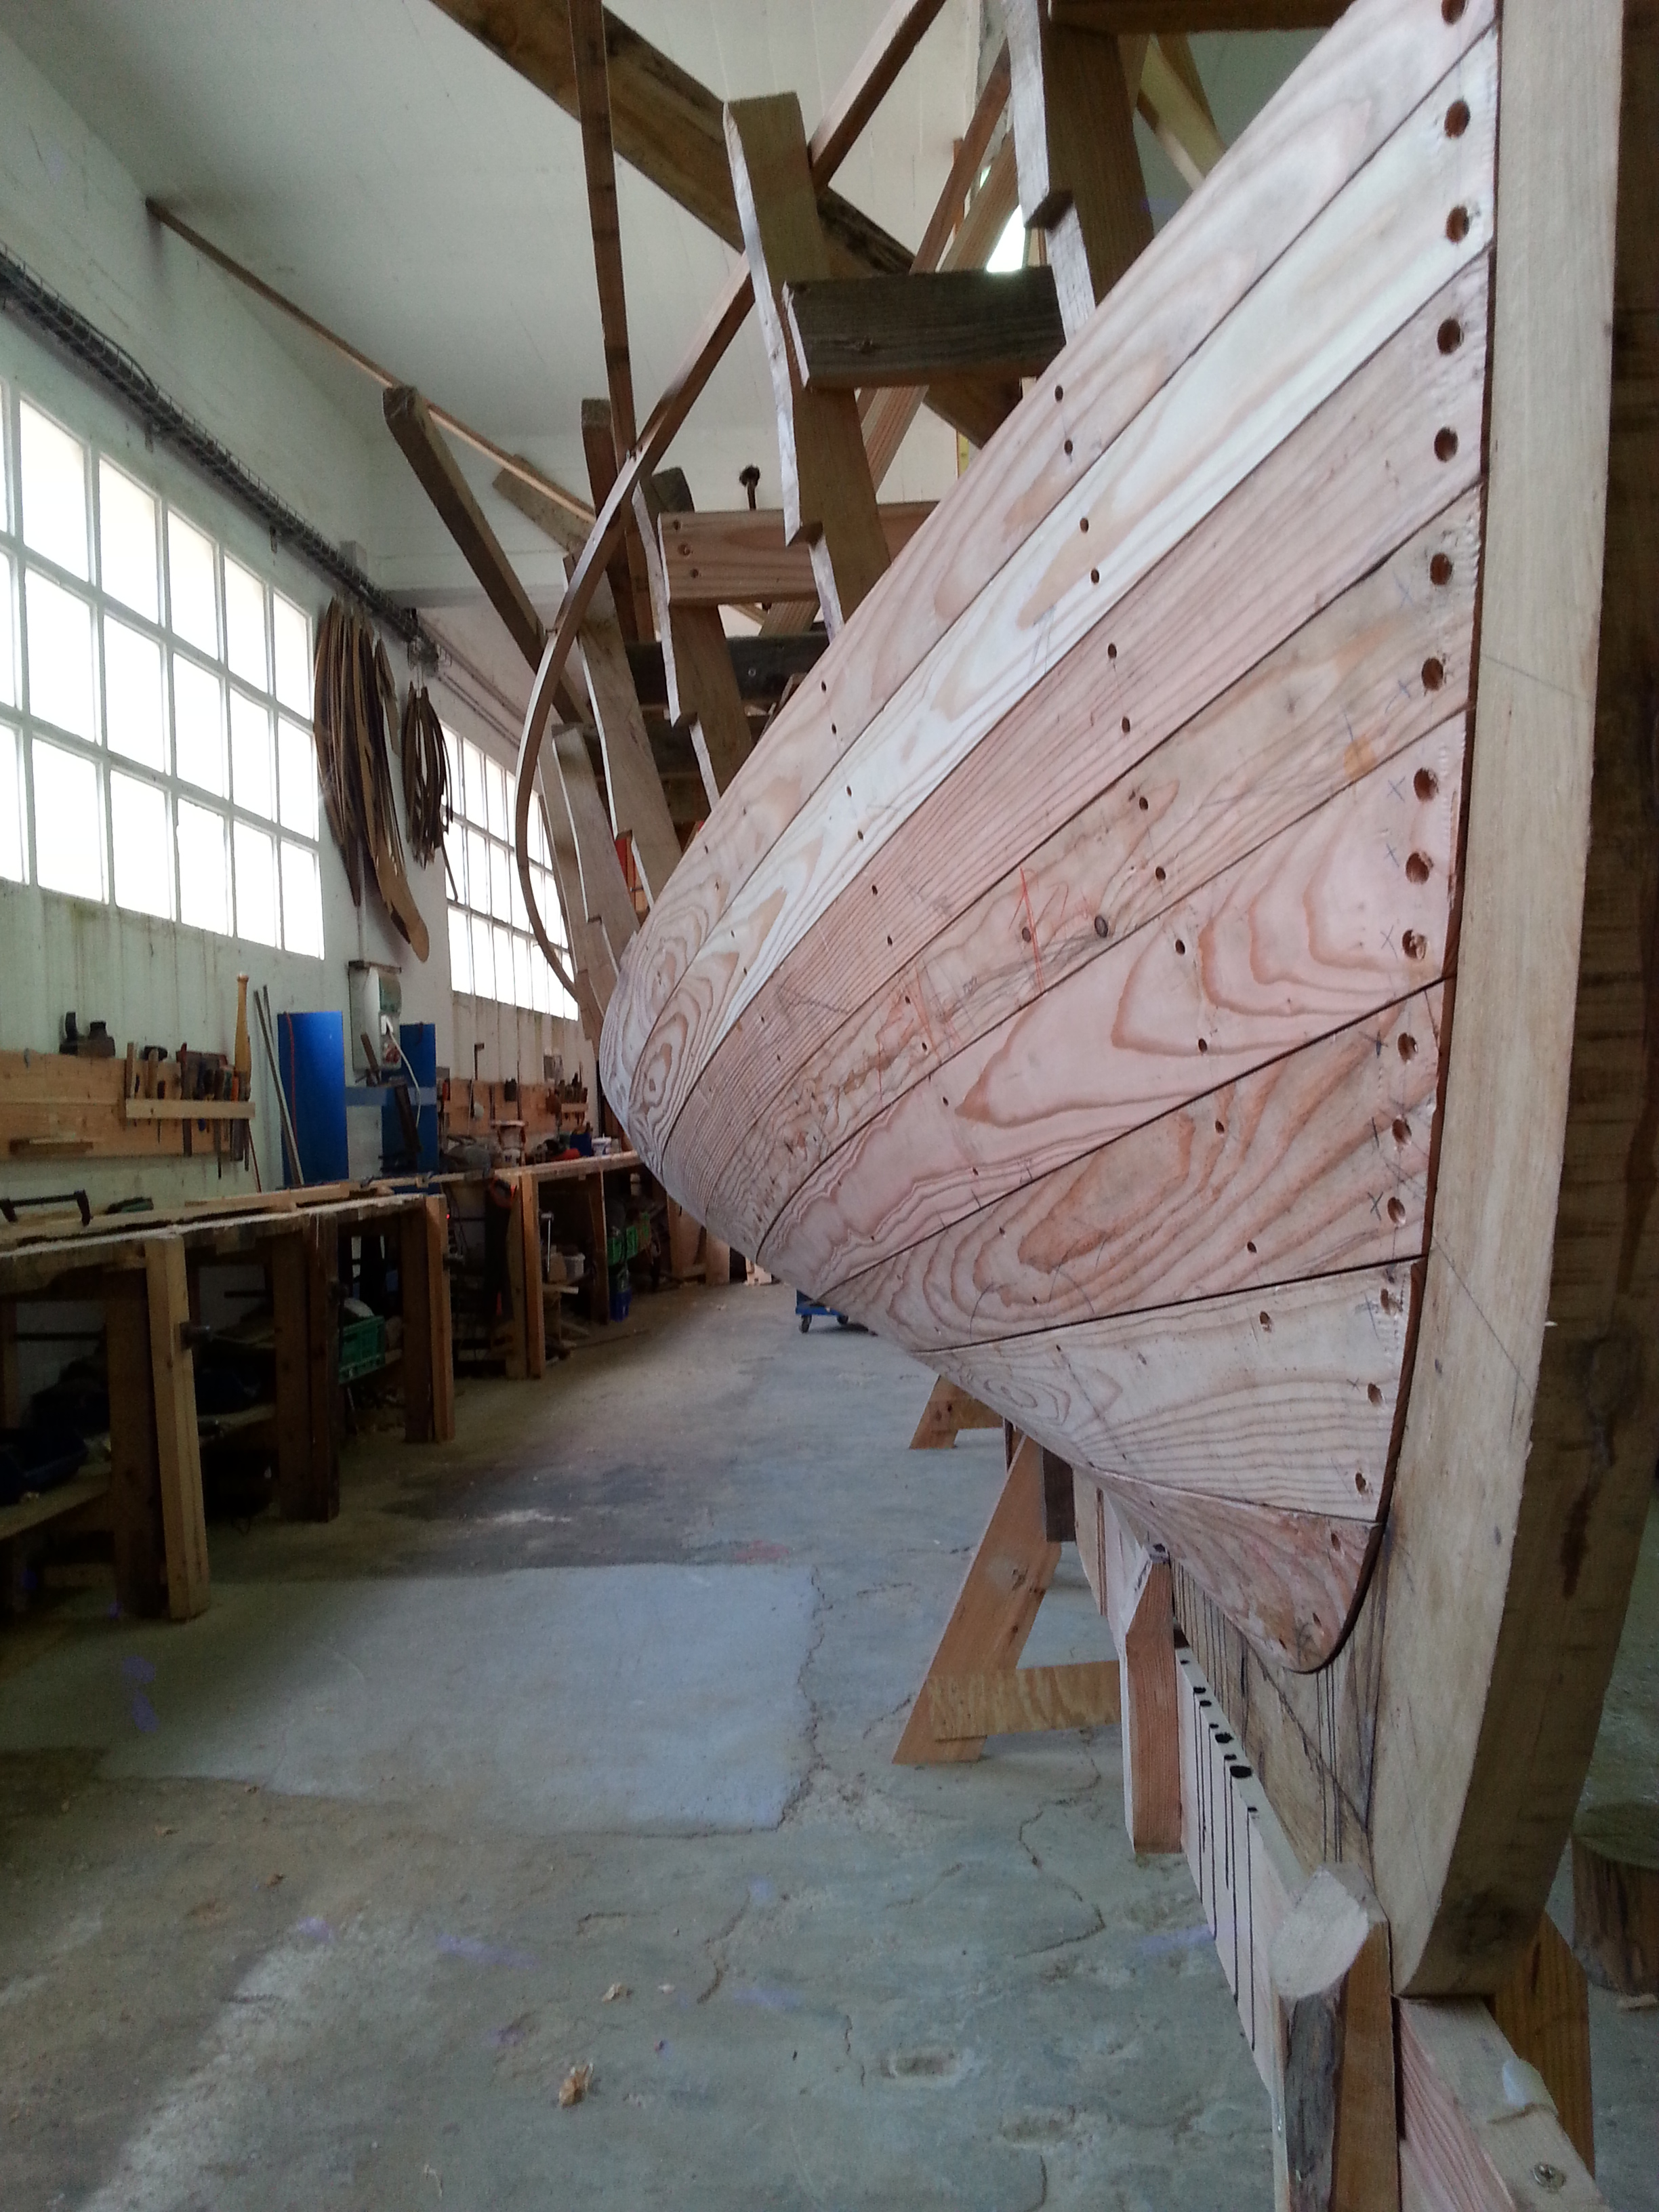 Traditional whaling ship